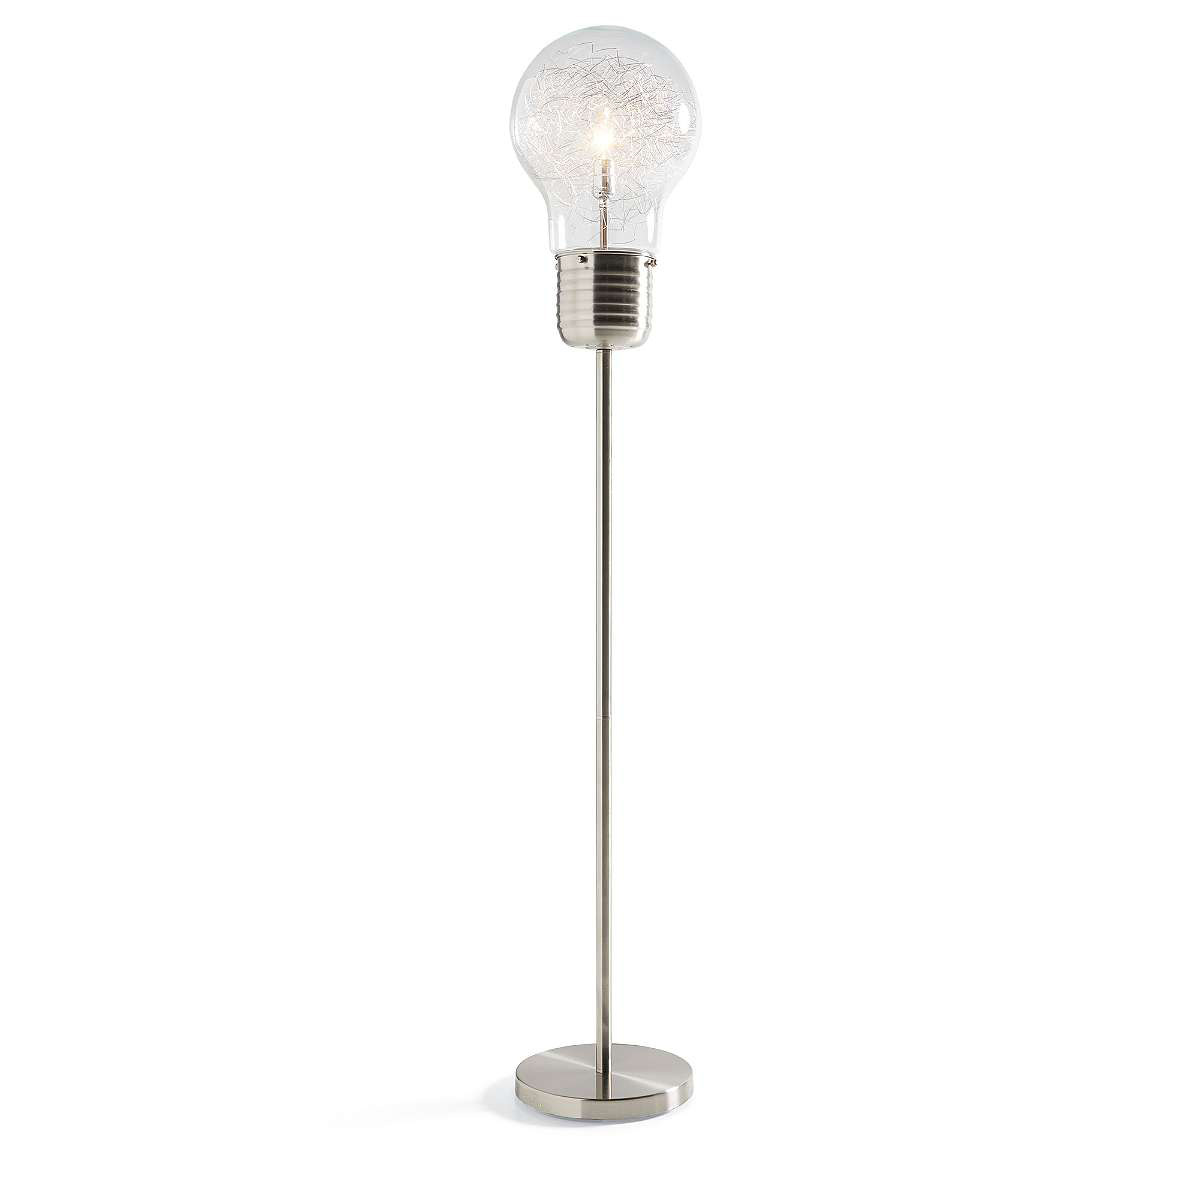 Edison light bulb floor lamp the green head A light bulb